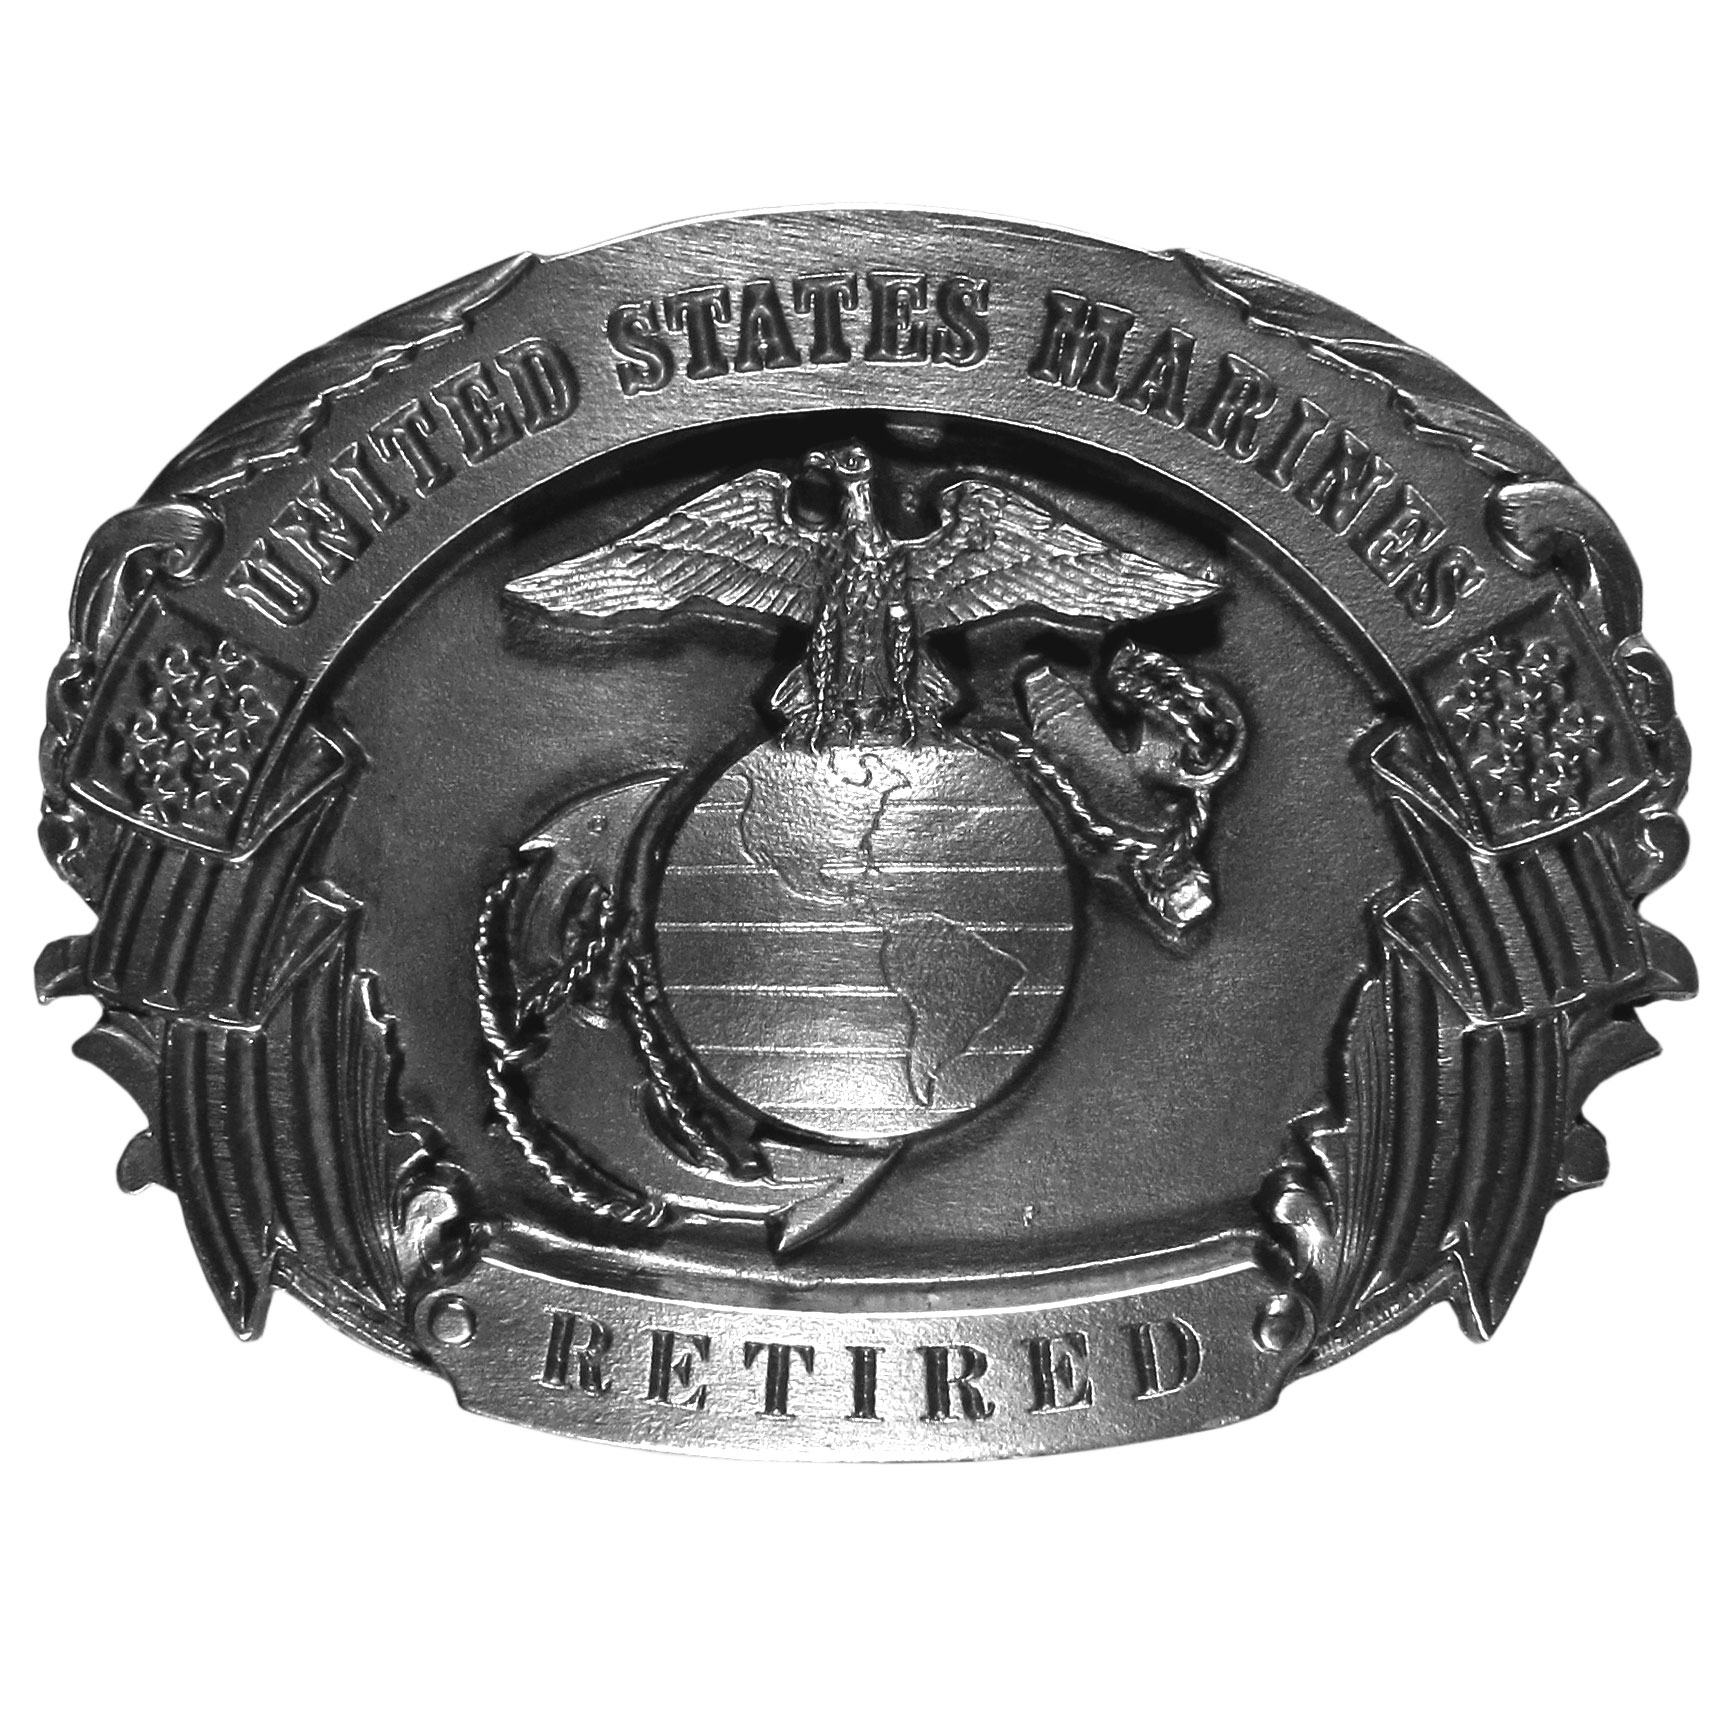 "Marines Retired Antiqued Belt Buckle - ""Are you retired from the Marines?  This belt buckle is for you!  """"United States Marines, Retired"""" is written in bold with the Marine seal in the center and a banner made out of American flags on the sides.  On the back are the words, """"To all those who have served their country, America says Thanks!""""  This exquisitely carved buckle is made of fully cast metal with a standard bale that fits up to 2"""" belts."""